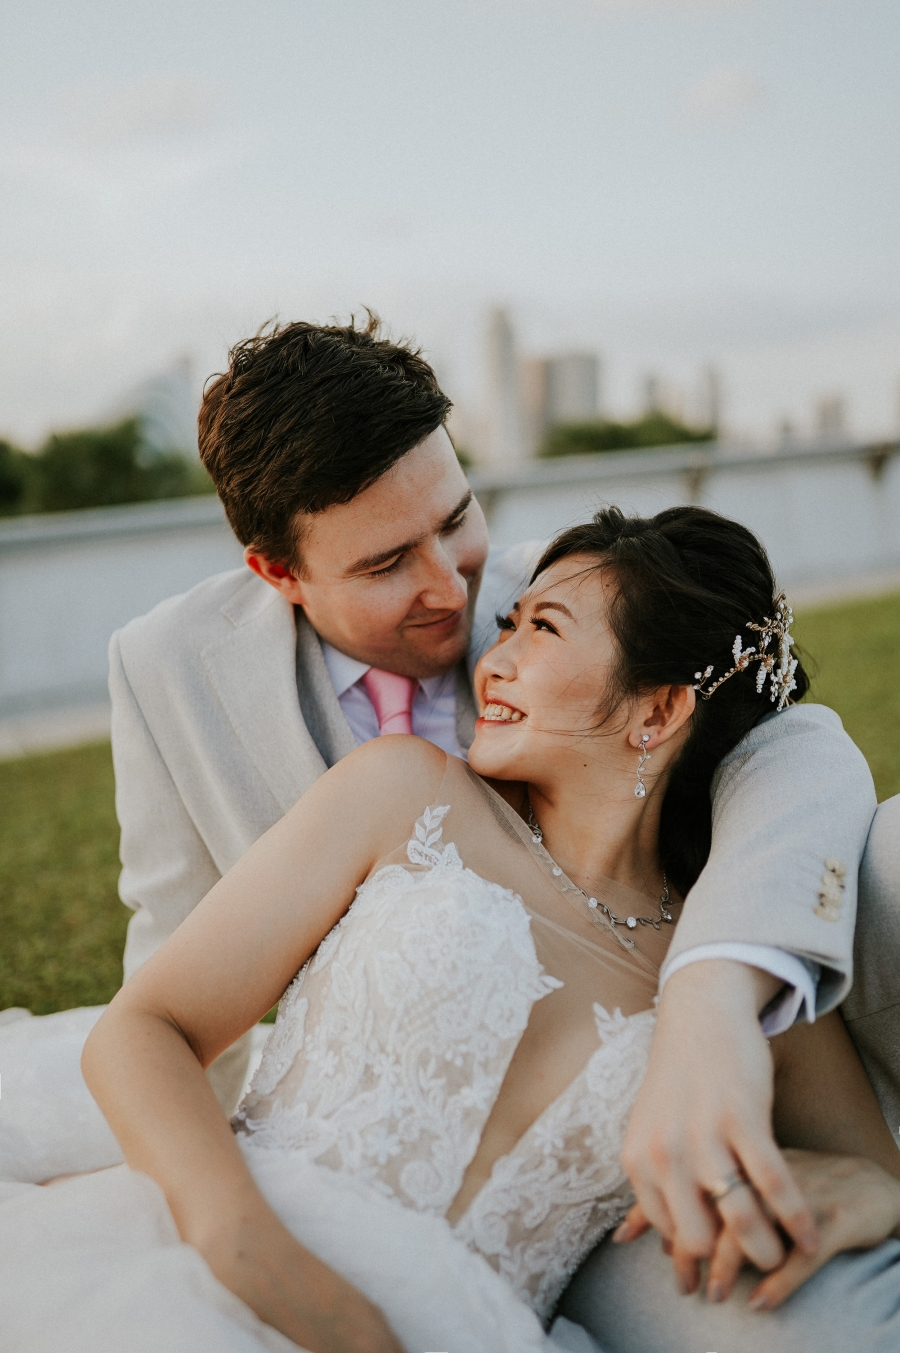 Singapore Outdoor Pre-Wedding At Fort Canning, Marina Barrage and Marina Bay Night Photoshoot by Charles on OneThreeOneFour 17